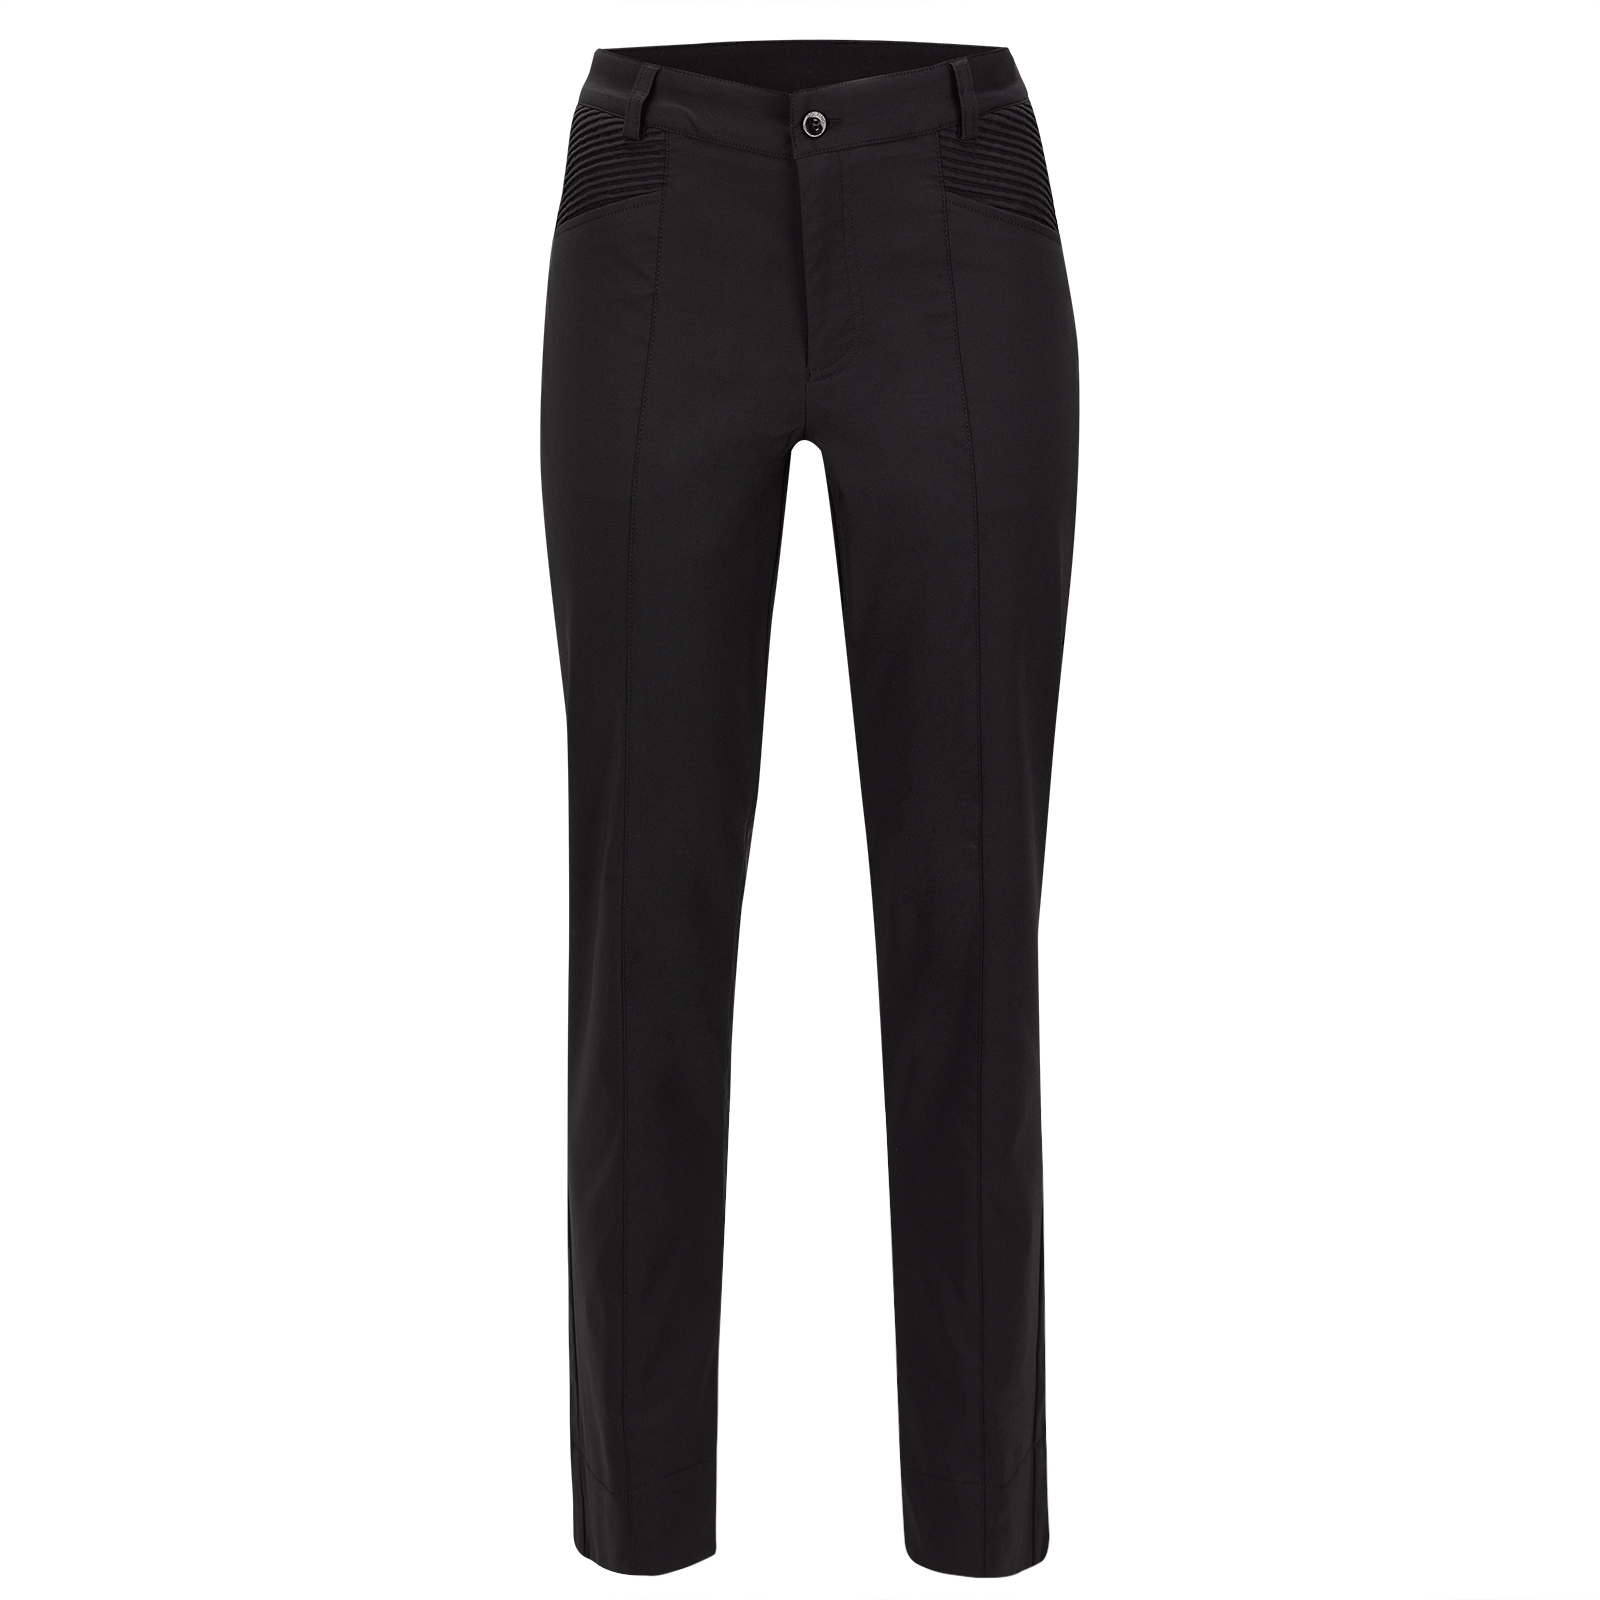 Ladies' 7/8 stretch golf trousers with Cold Protection in slim fit